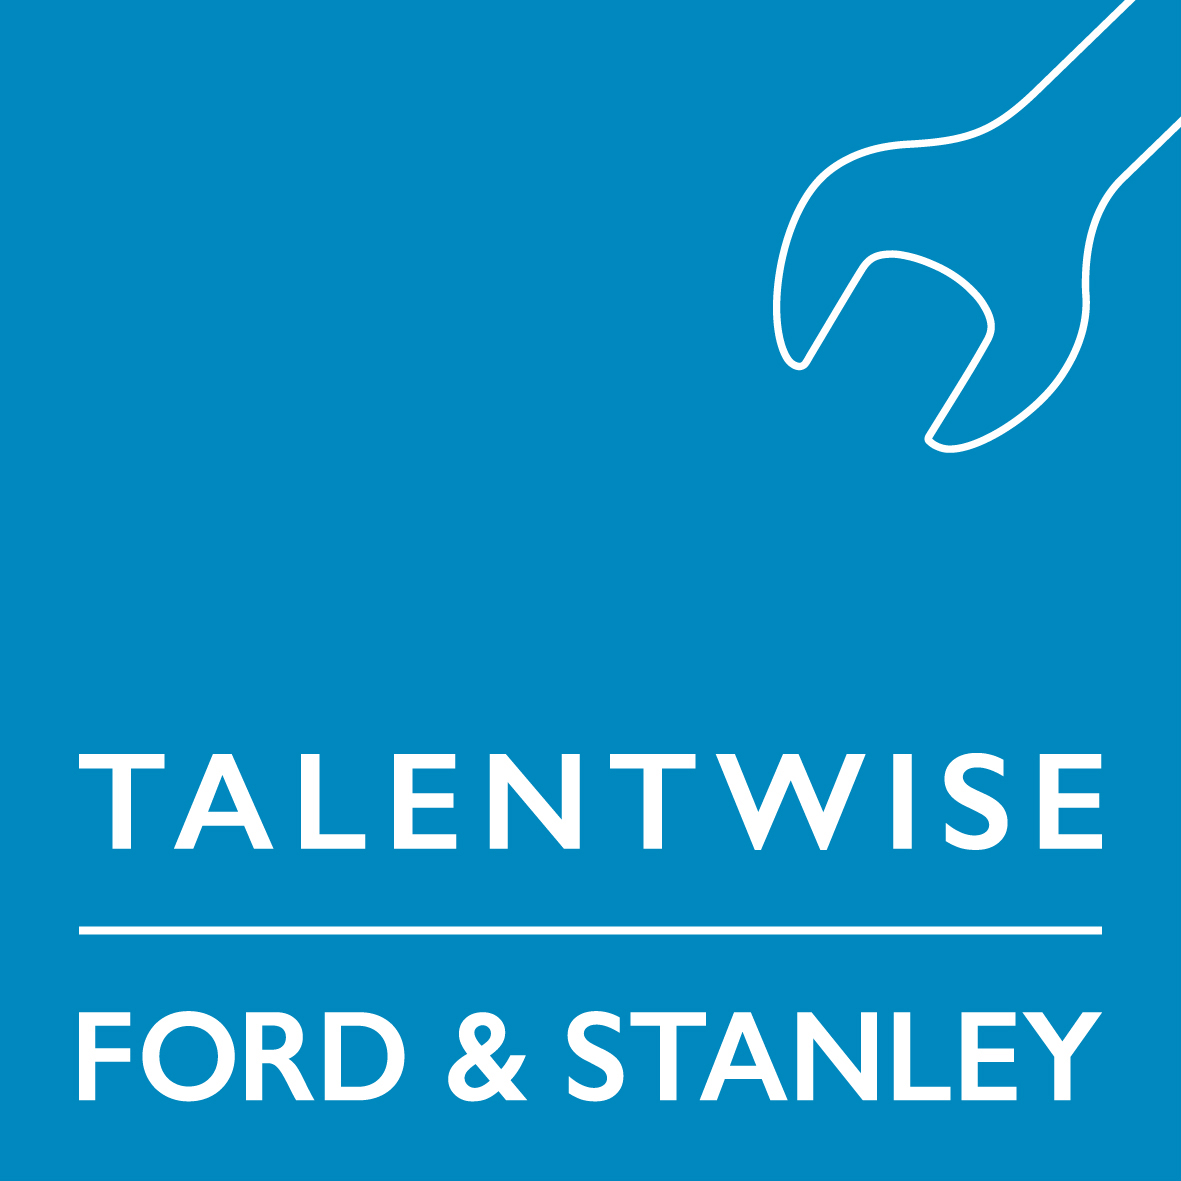 Ford & Stanley Talentwise